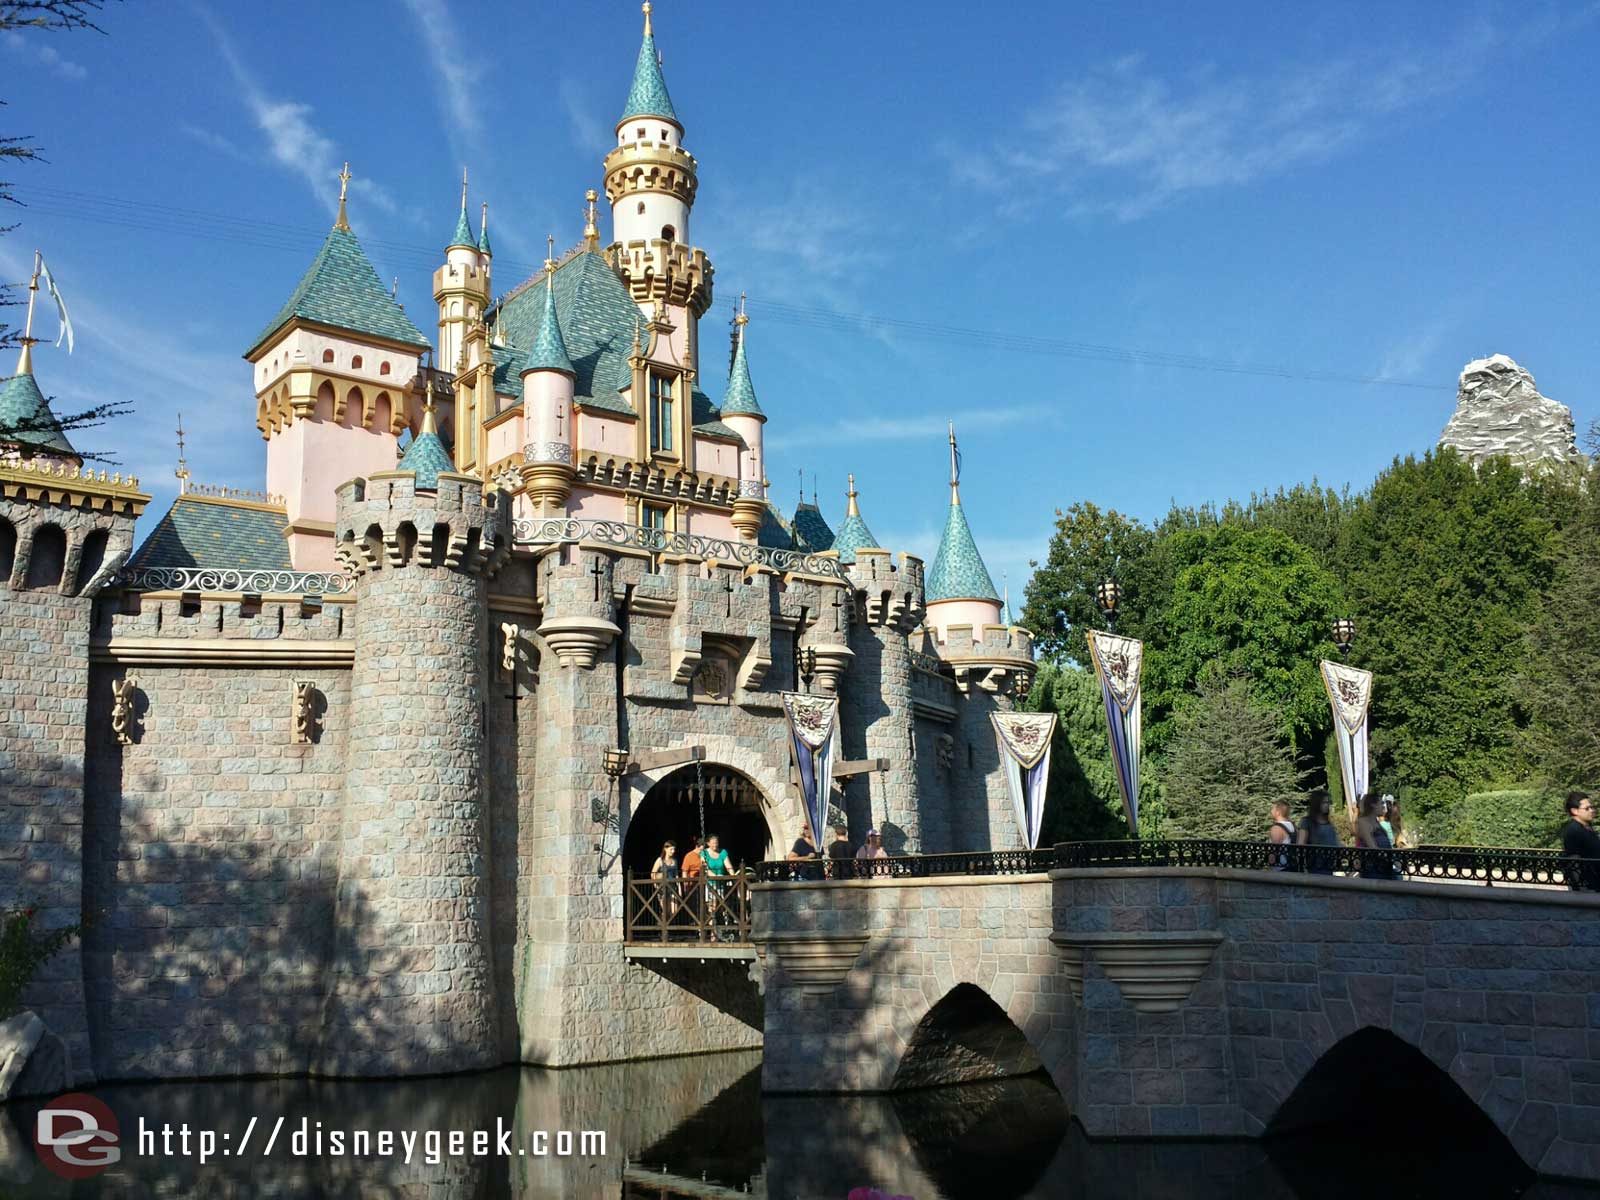 Sleeping Beauty Castle #Disneyland